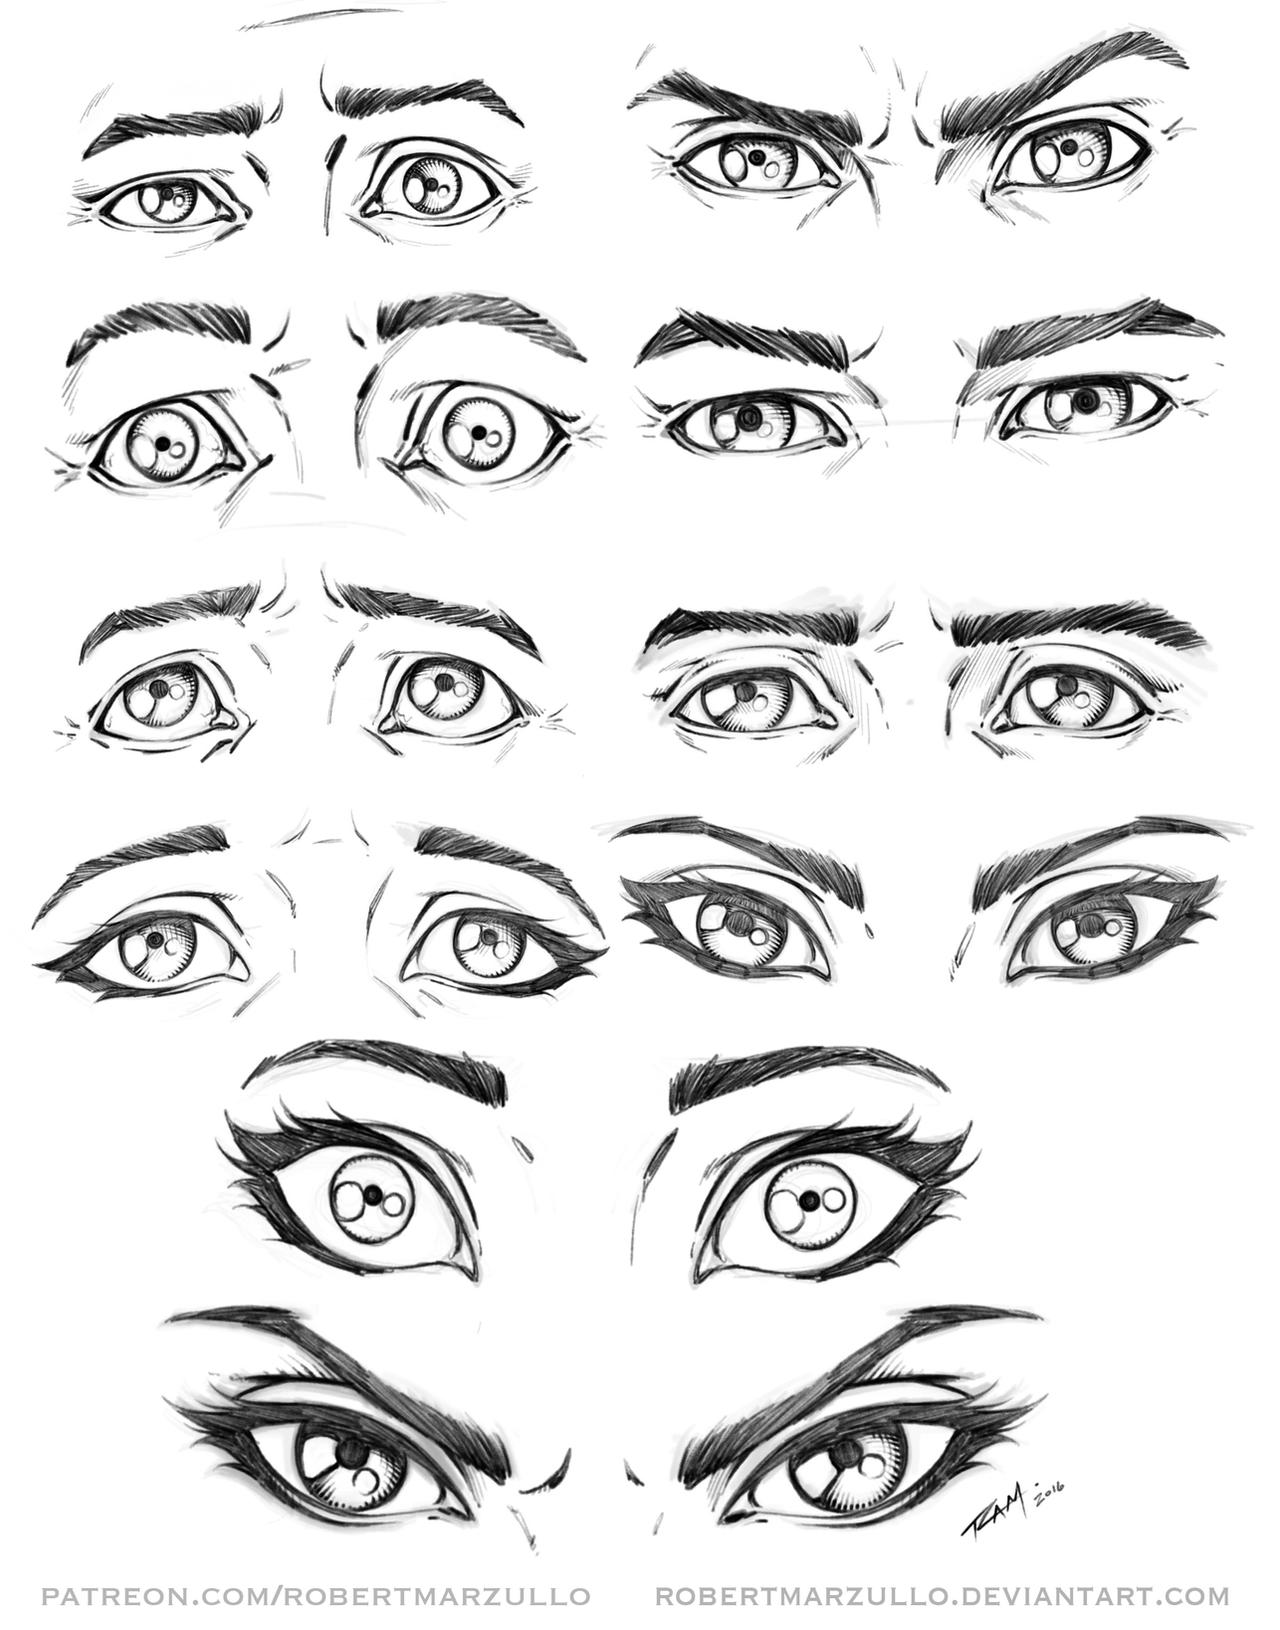 Eye Expressions Male And Female 634714656 further How To Make A Drawing Of A Baby Sleeping in addition How To Draw John Darling From Peter Pan additionally How To Draw Lion Eyes in addition How To Draw Perfect Peter From Horrid Henry. on nose drawings